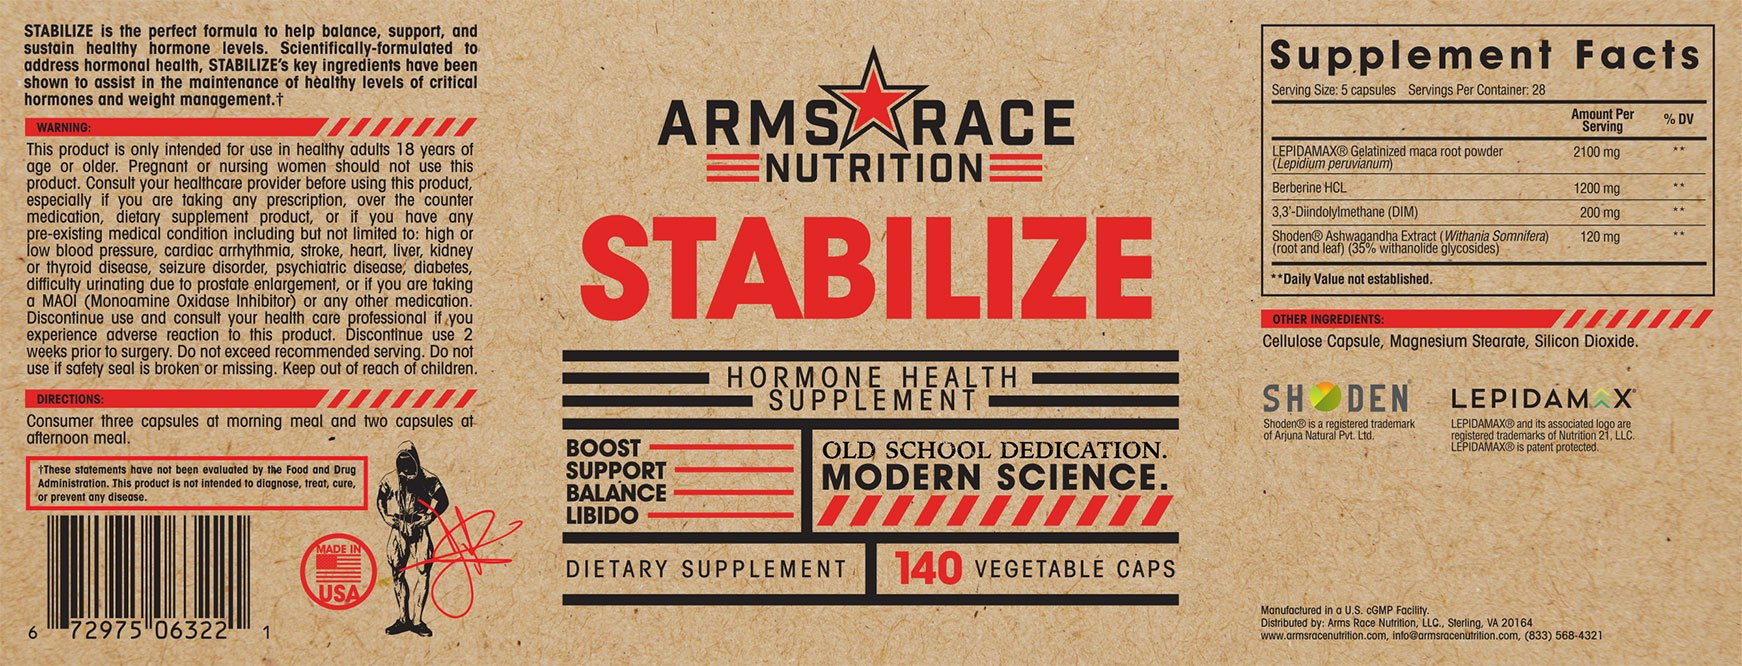 ARMS RACE NUTRITION STABILIZE